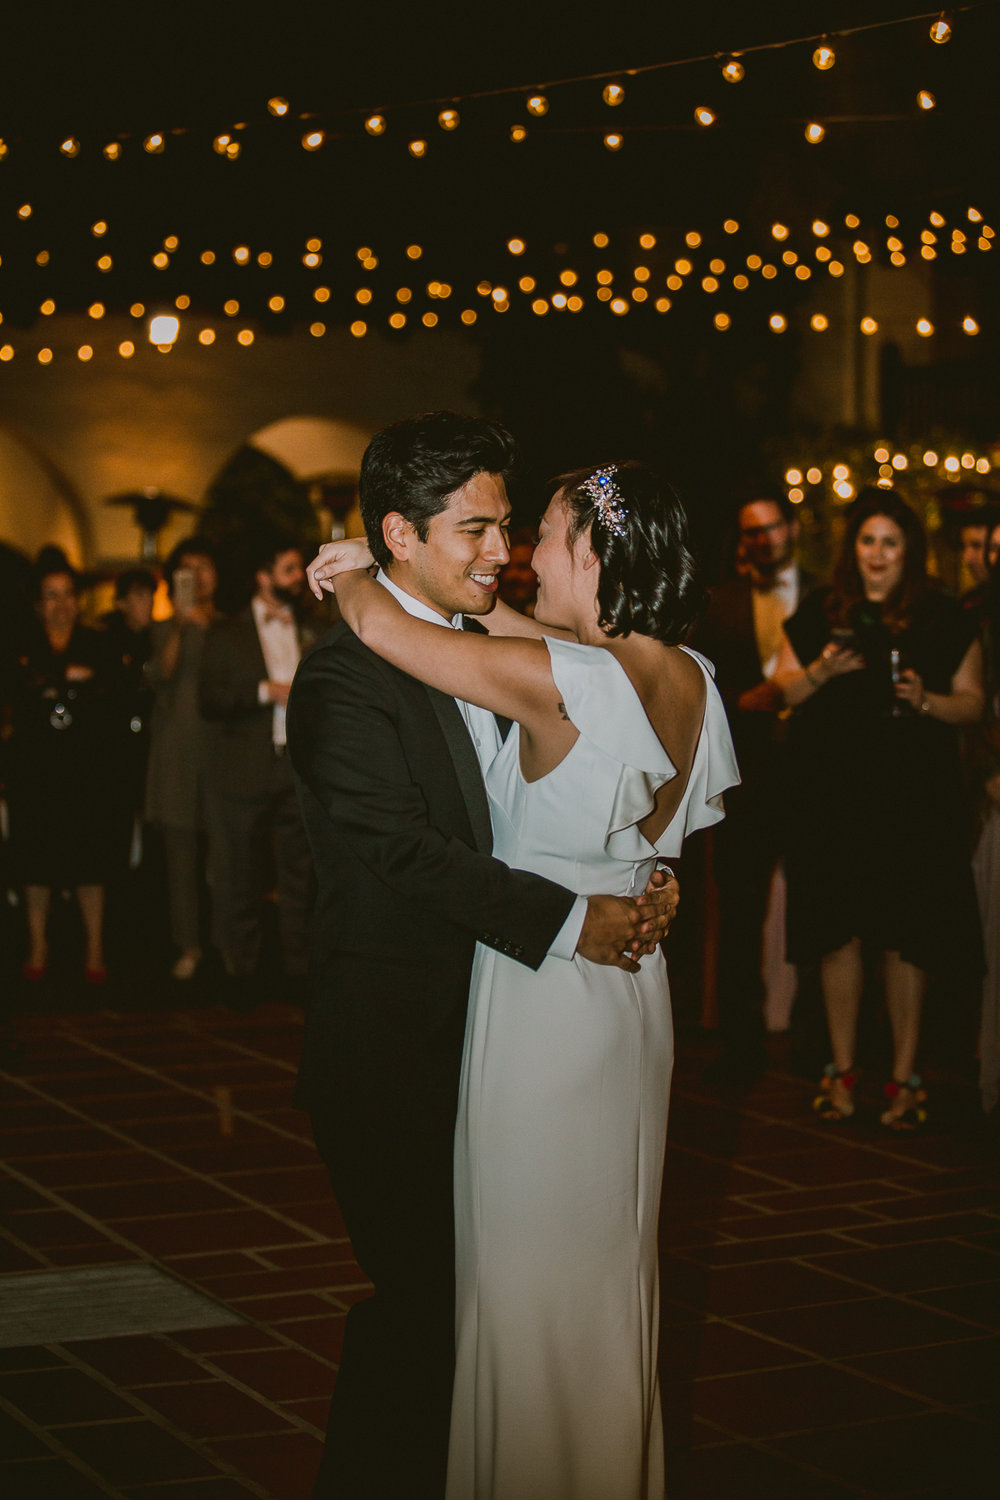 bower-museum-santa-ana-orange-county-kelley-raye-los-angeles-wedding-photographer-208.jpg